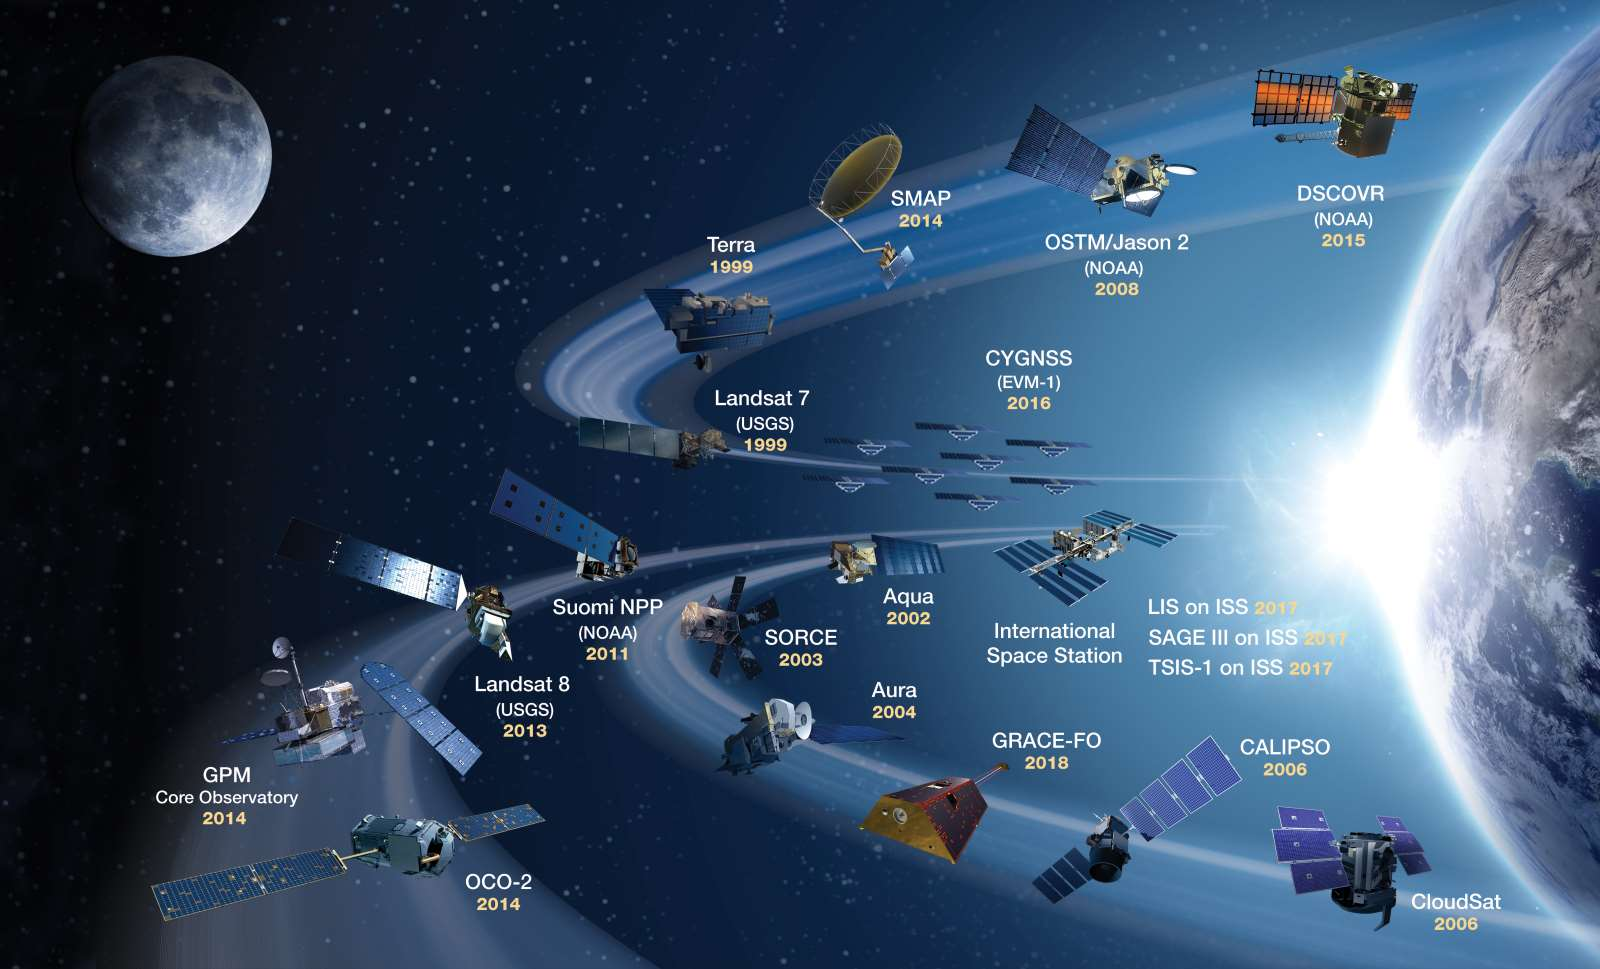 NASA's current (as of October 2018) Earth-observing satellite fleet with launch dates